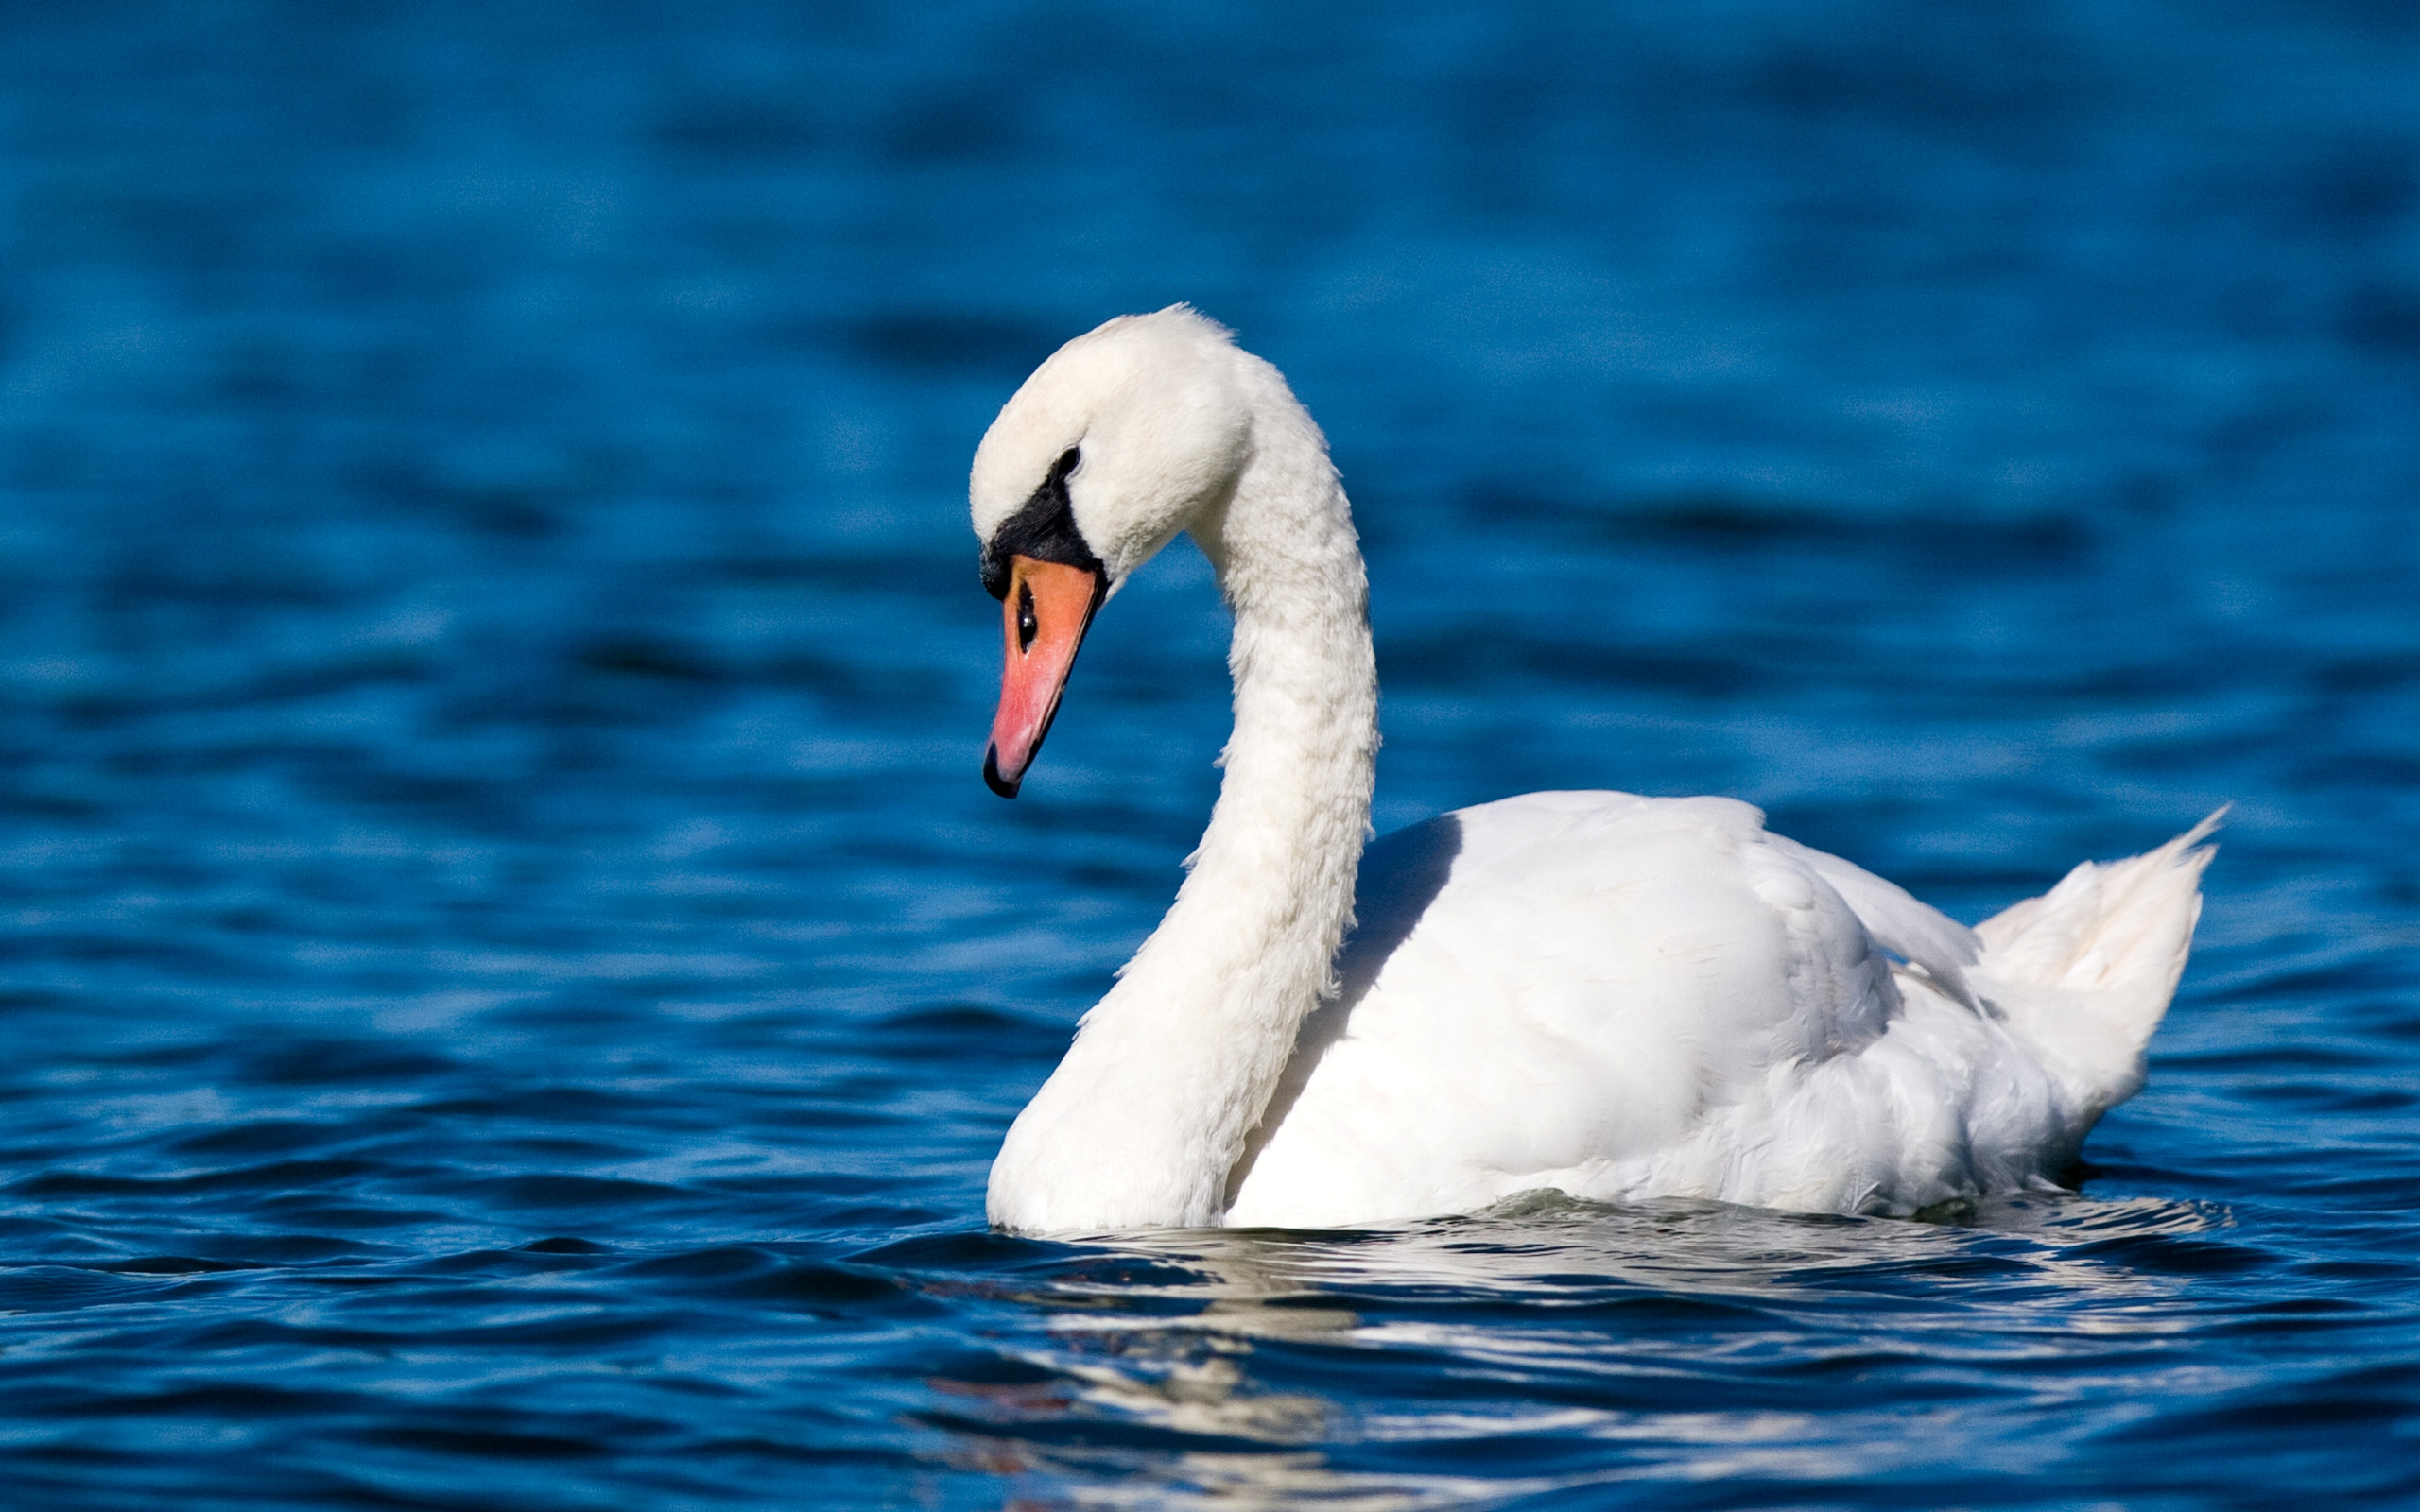 20 Wonderful HD Swan Bird Wallpapers - HDWallSource.com